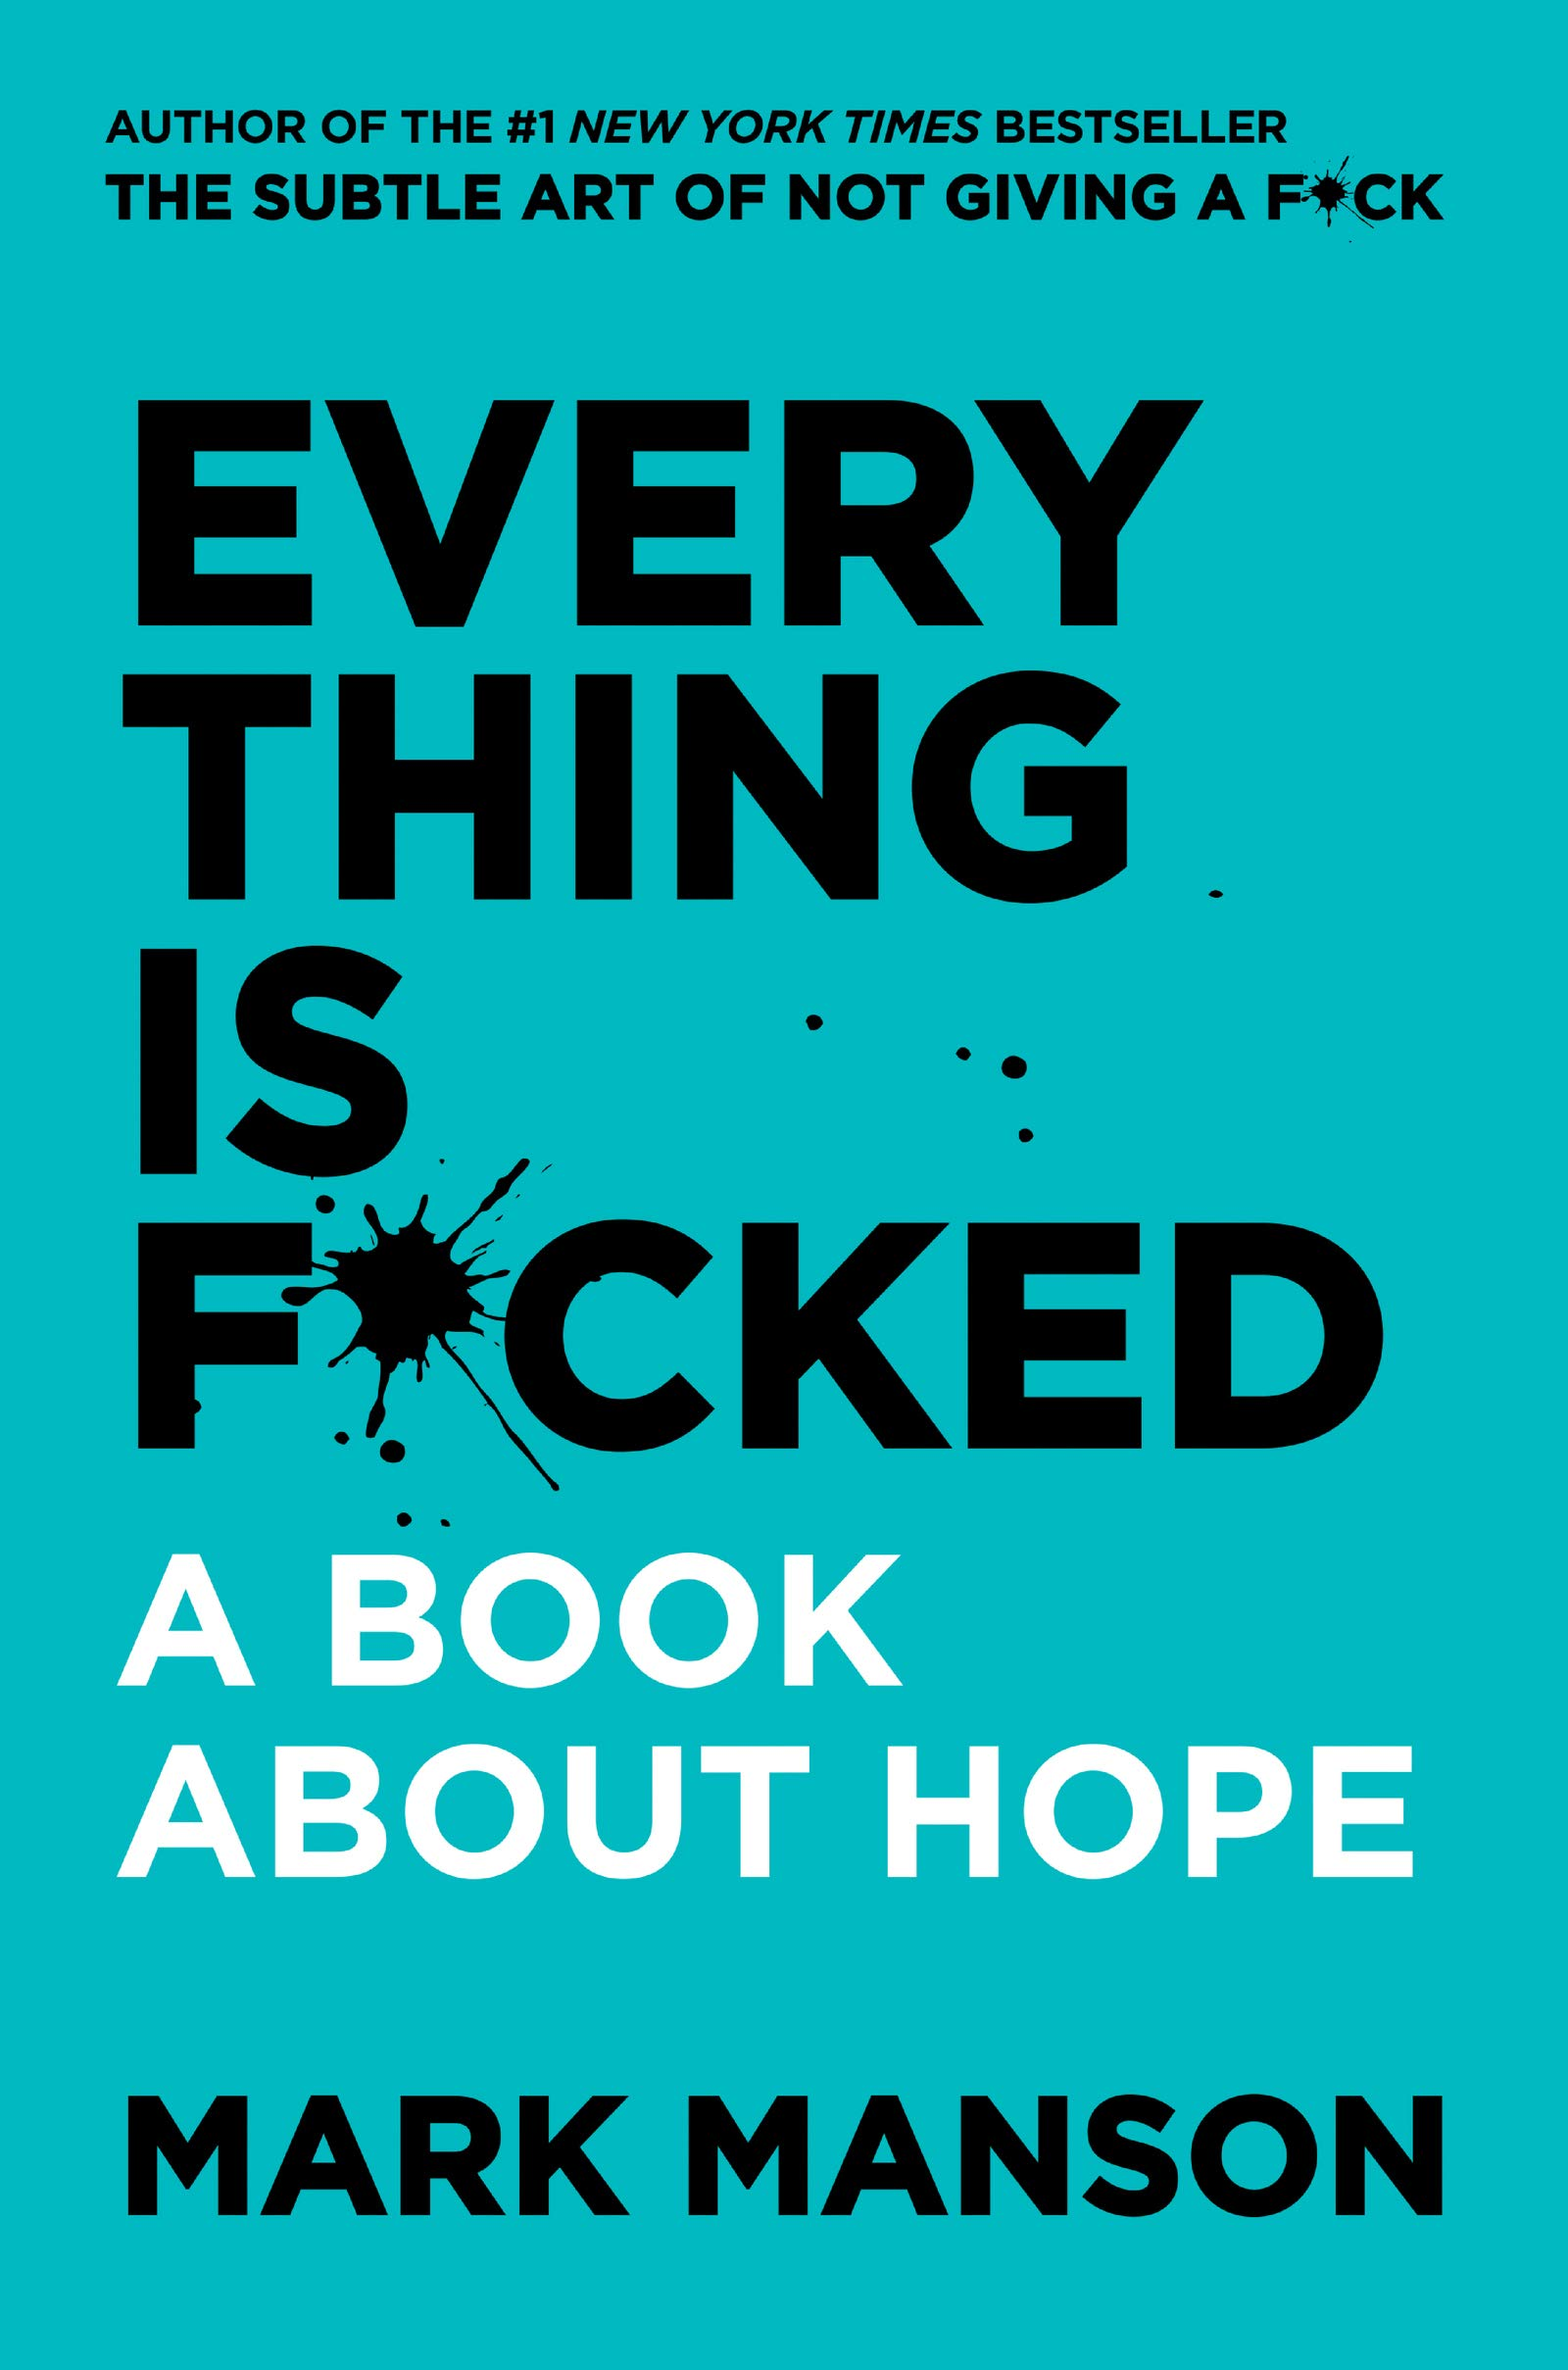 Everything is F*cked A Book About Hope by Mark Manson